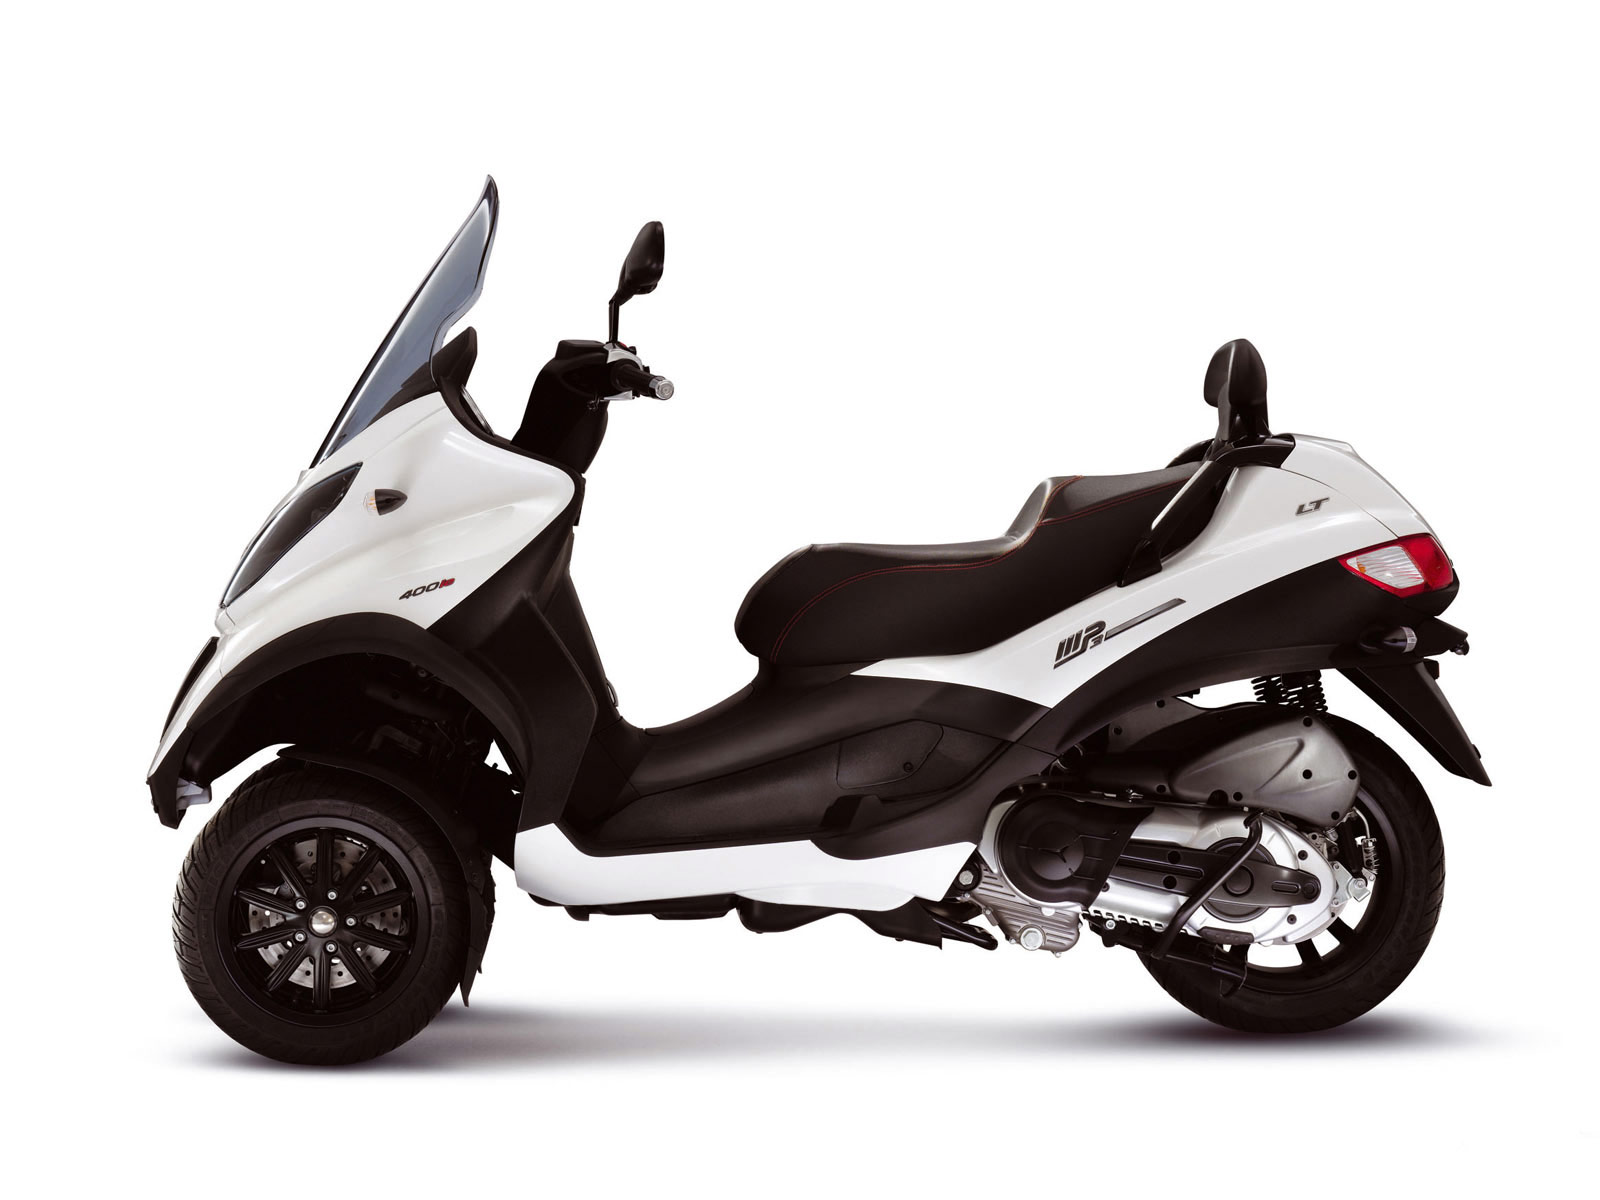 scooter pictures 2010 piaggio mp3 lt400ie specifications. Black Bedroom Furniture Sets. Home Design Ideas